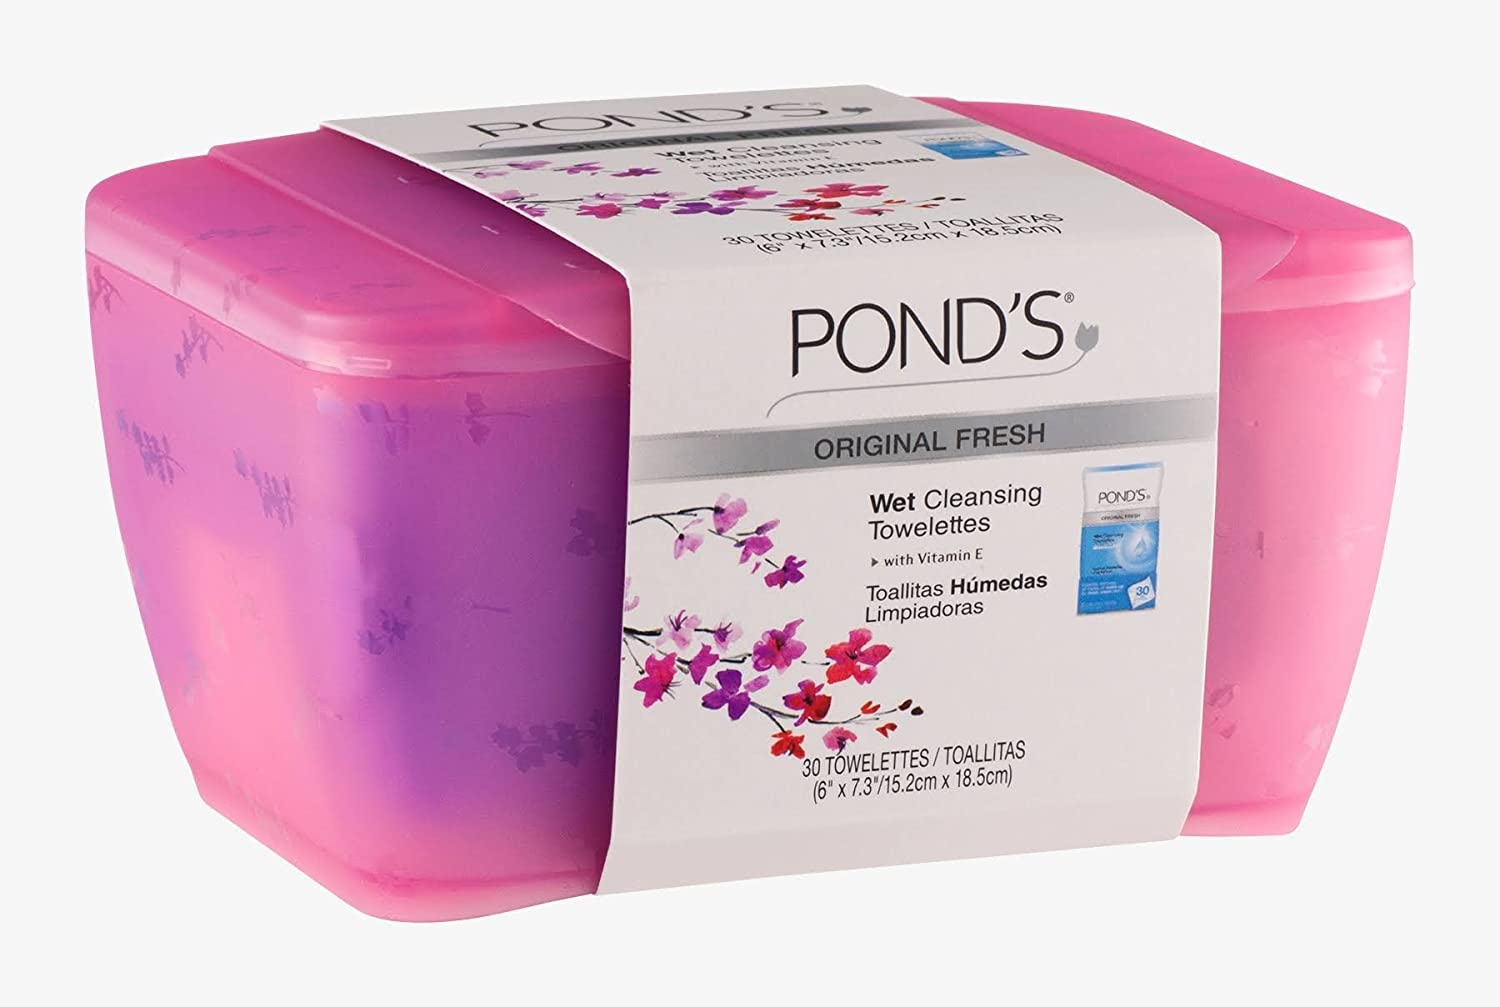 Amazon.com: Ponds Wet Cleansing Towelettes and Decorative Box (1 unit): Beauty